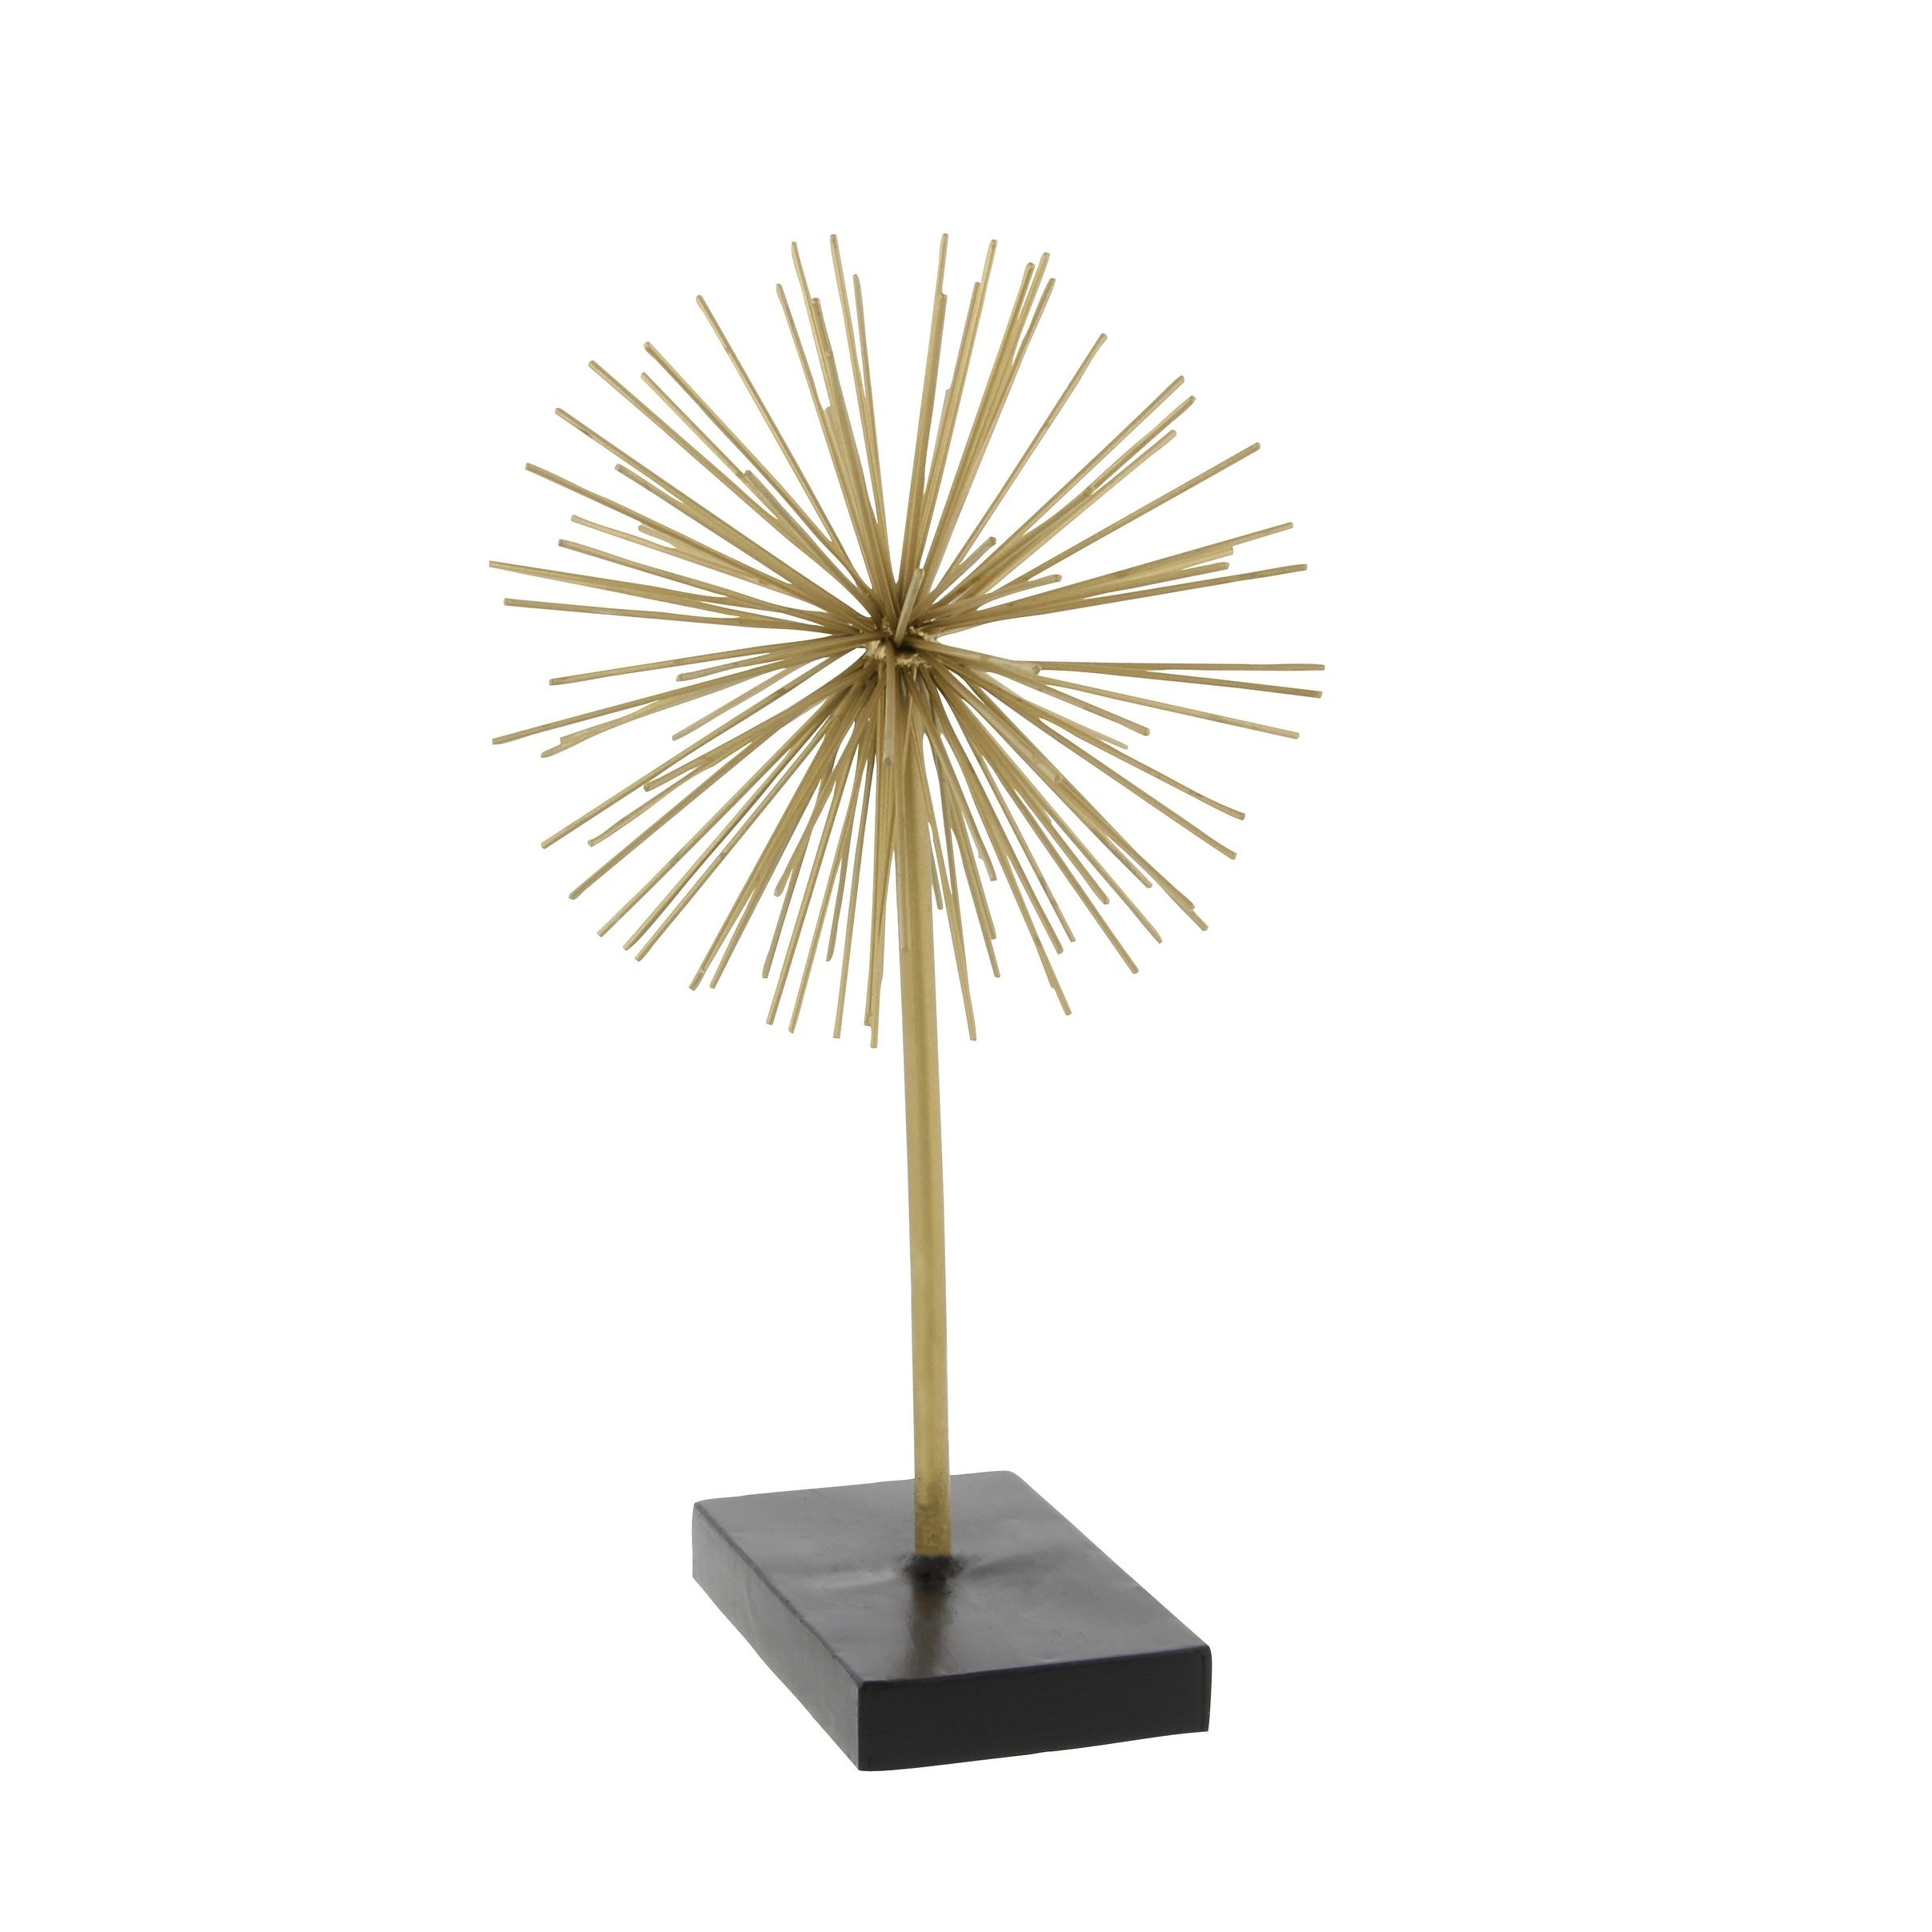 "Tall Contemporary Style 3d Round Gold Metal Starburst Sculptures On Black Stands Set Of 3 – 11"", 15"", 20"" Inside Set Of 3 Contemporary 6, 9, And 11 Inch Gold Tin Starburst Sculptures (View 3 of 30)"